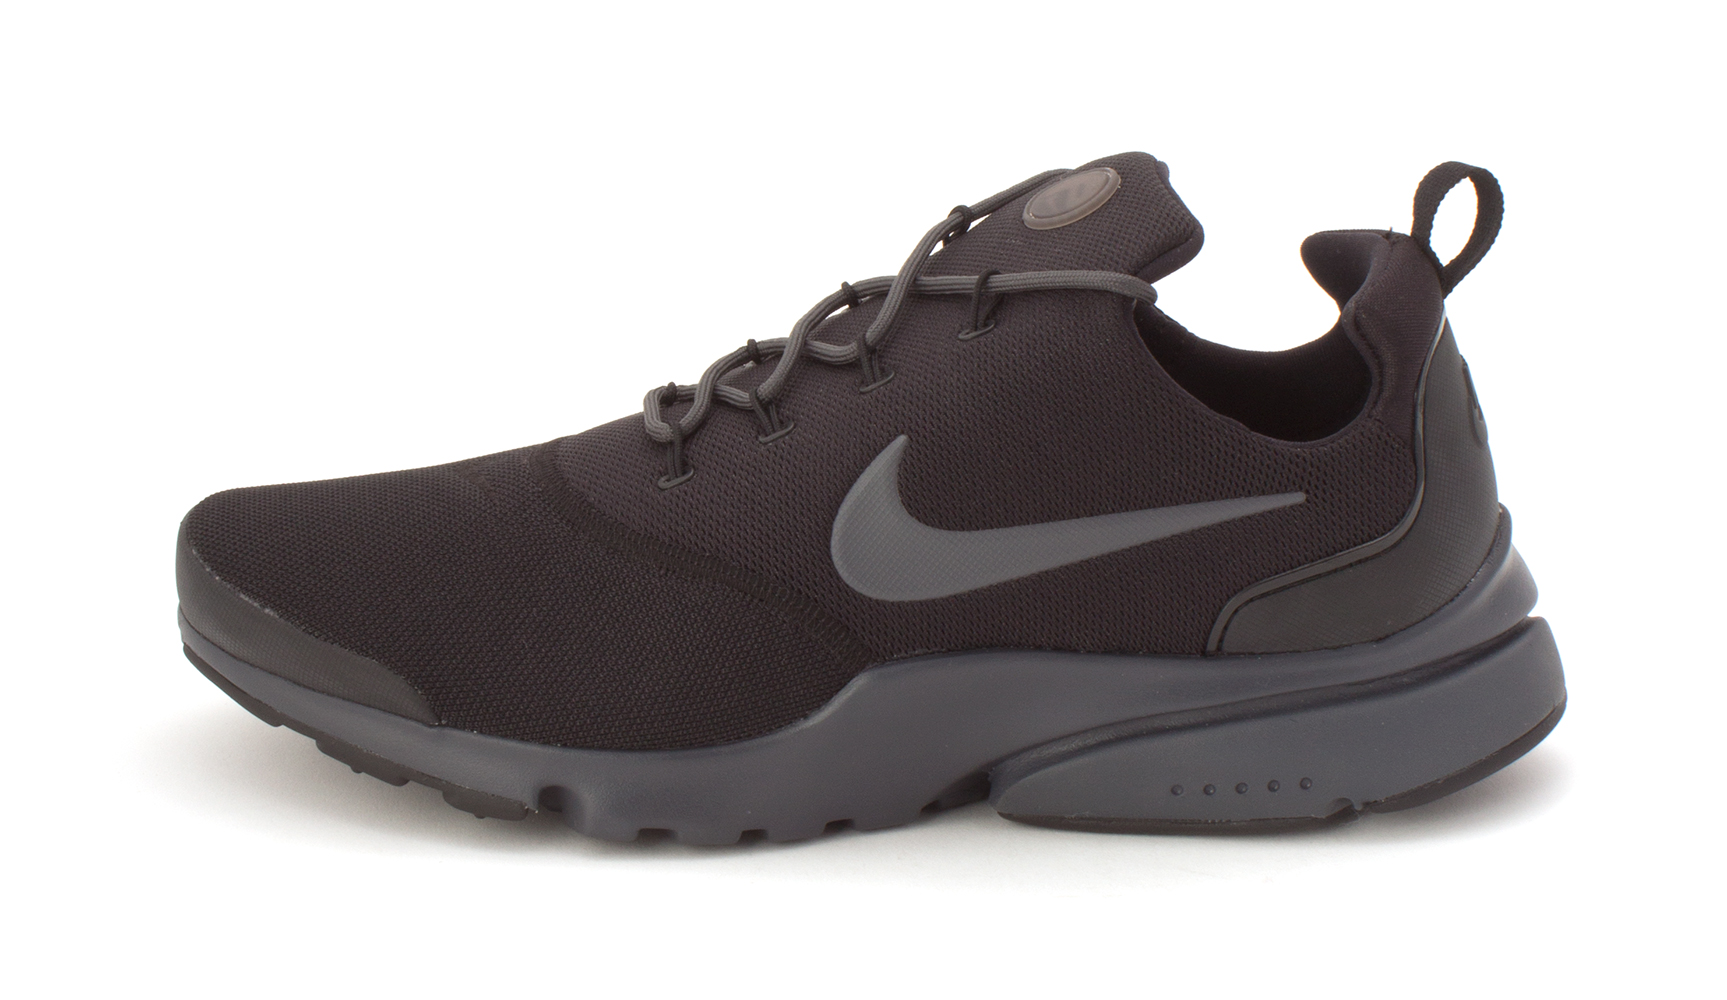 Trainers Nike Mens Presto Fly Se Low Top Lace Up Running Sneaker Men's Shoes